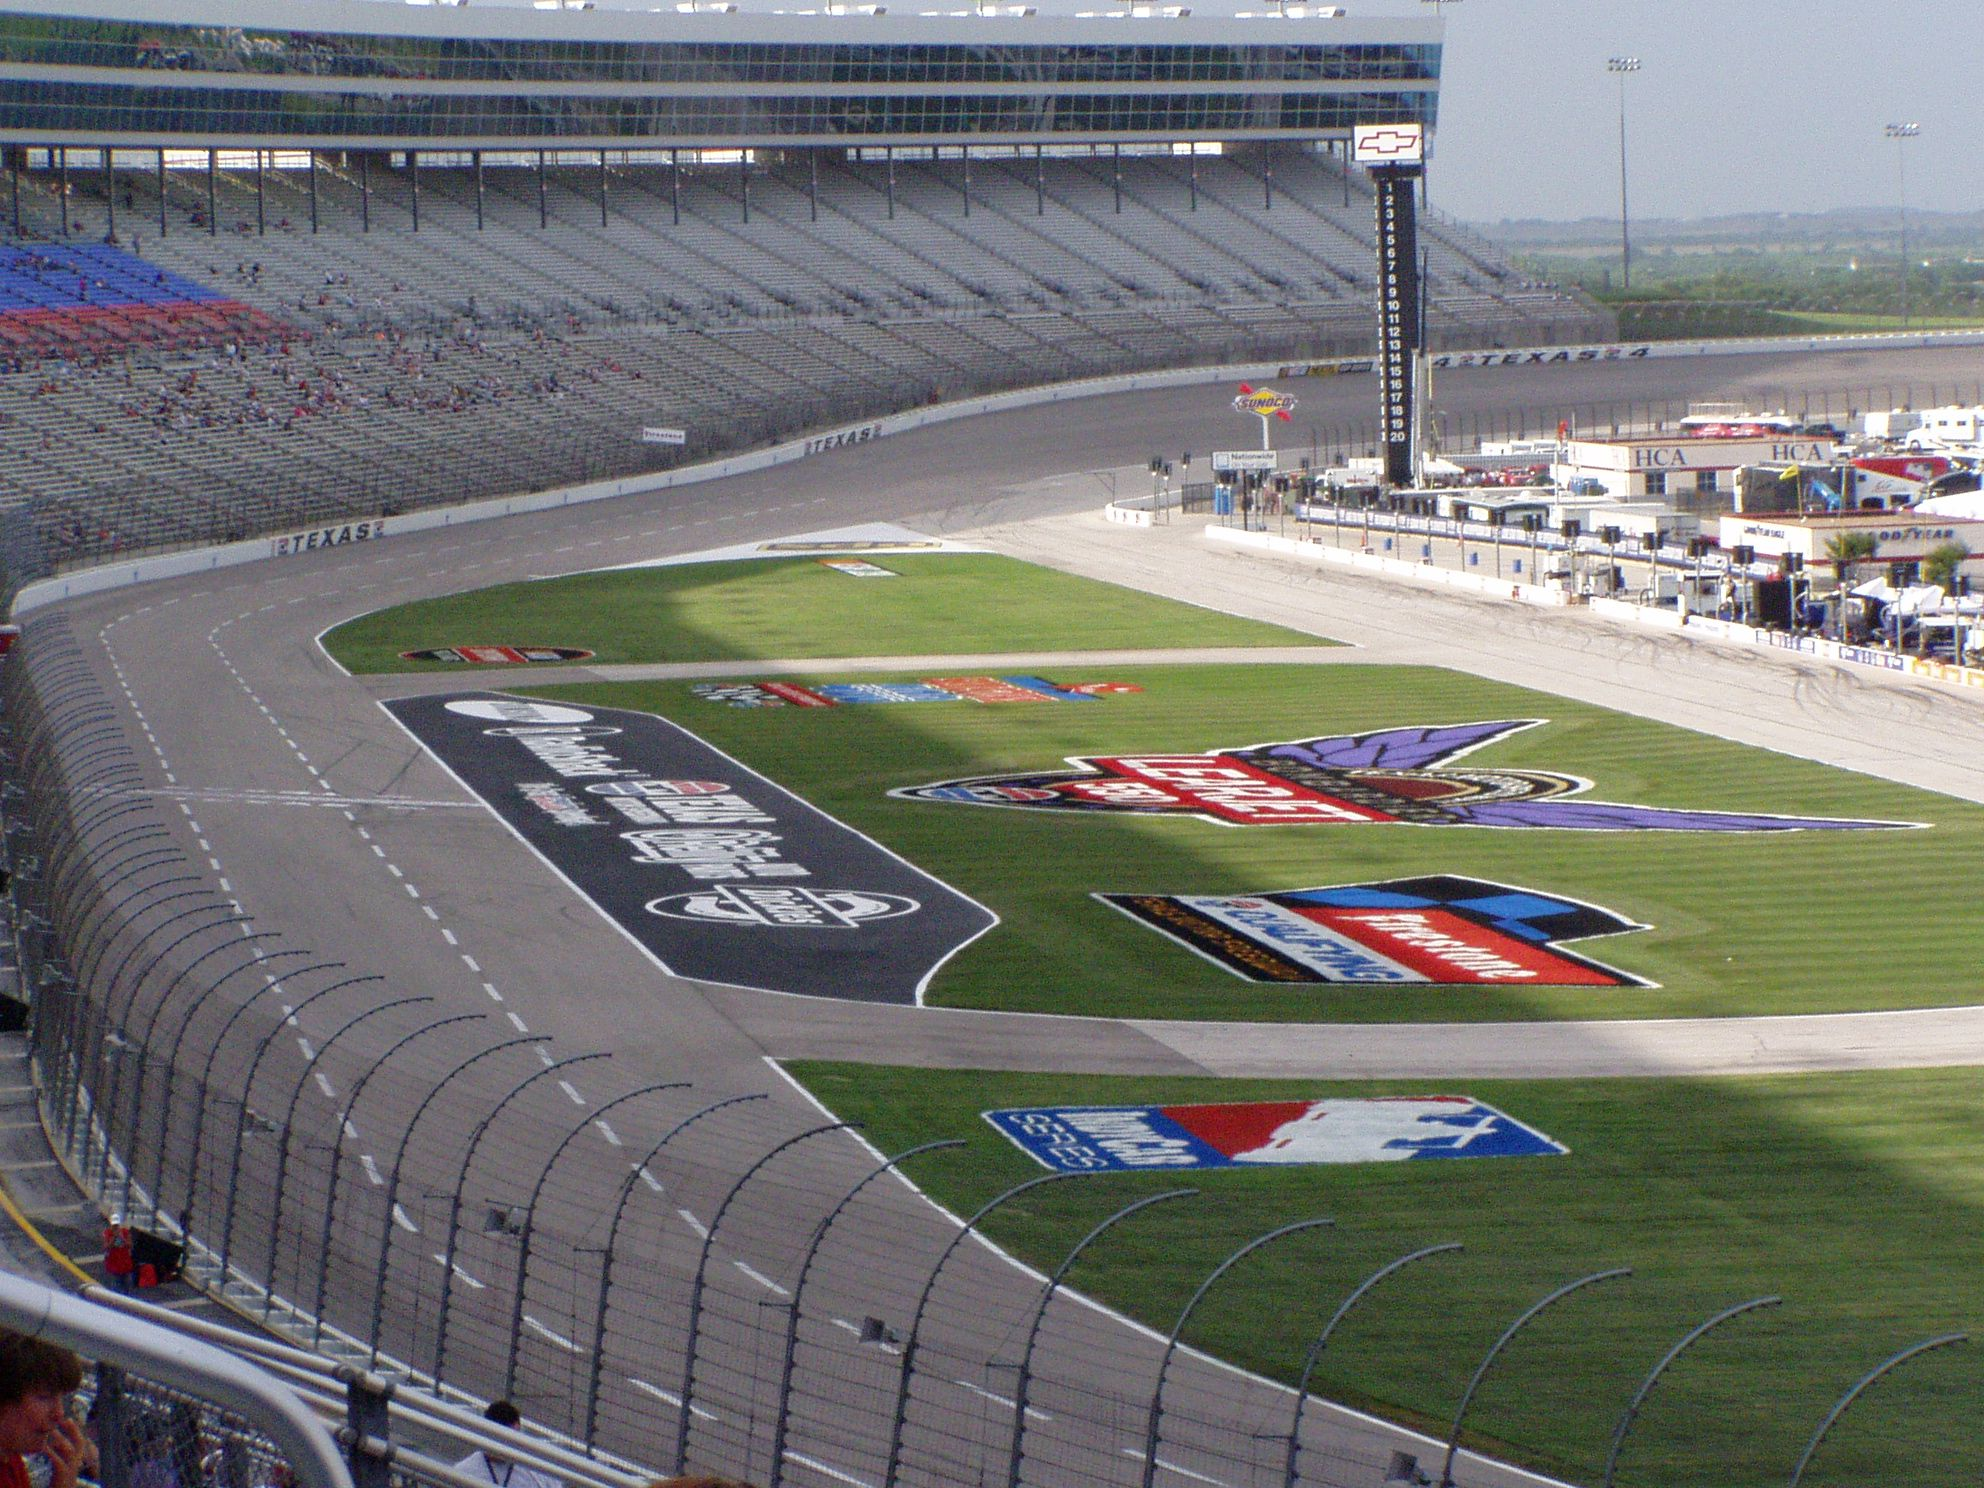 Texas Motor Speedway - Oh how I wish I was there this weekend!